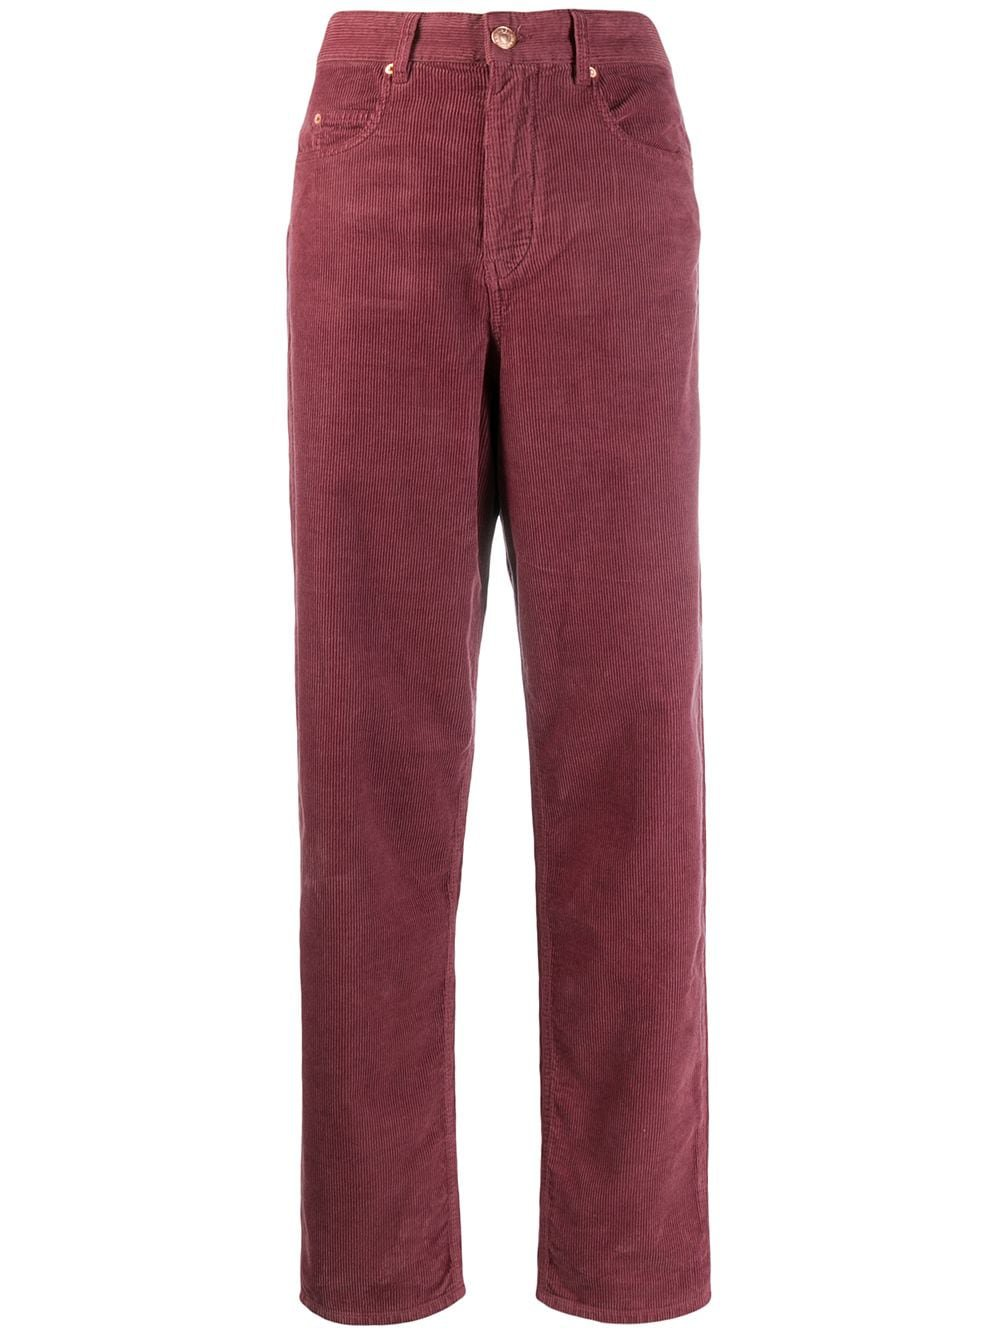 Isabel Marant Étoile High Waisted Tapered Trousers